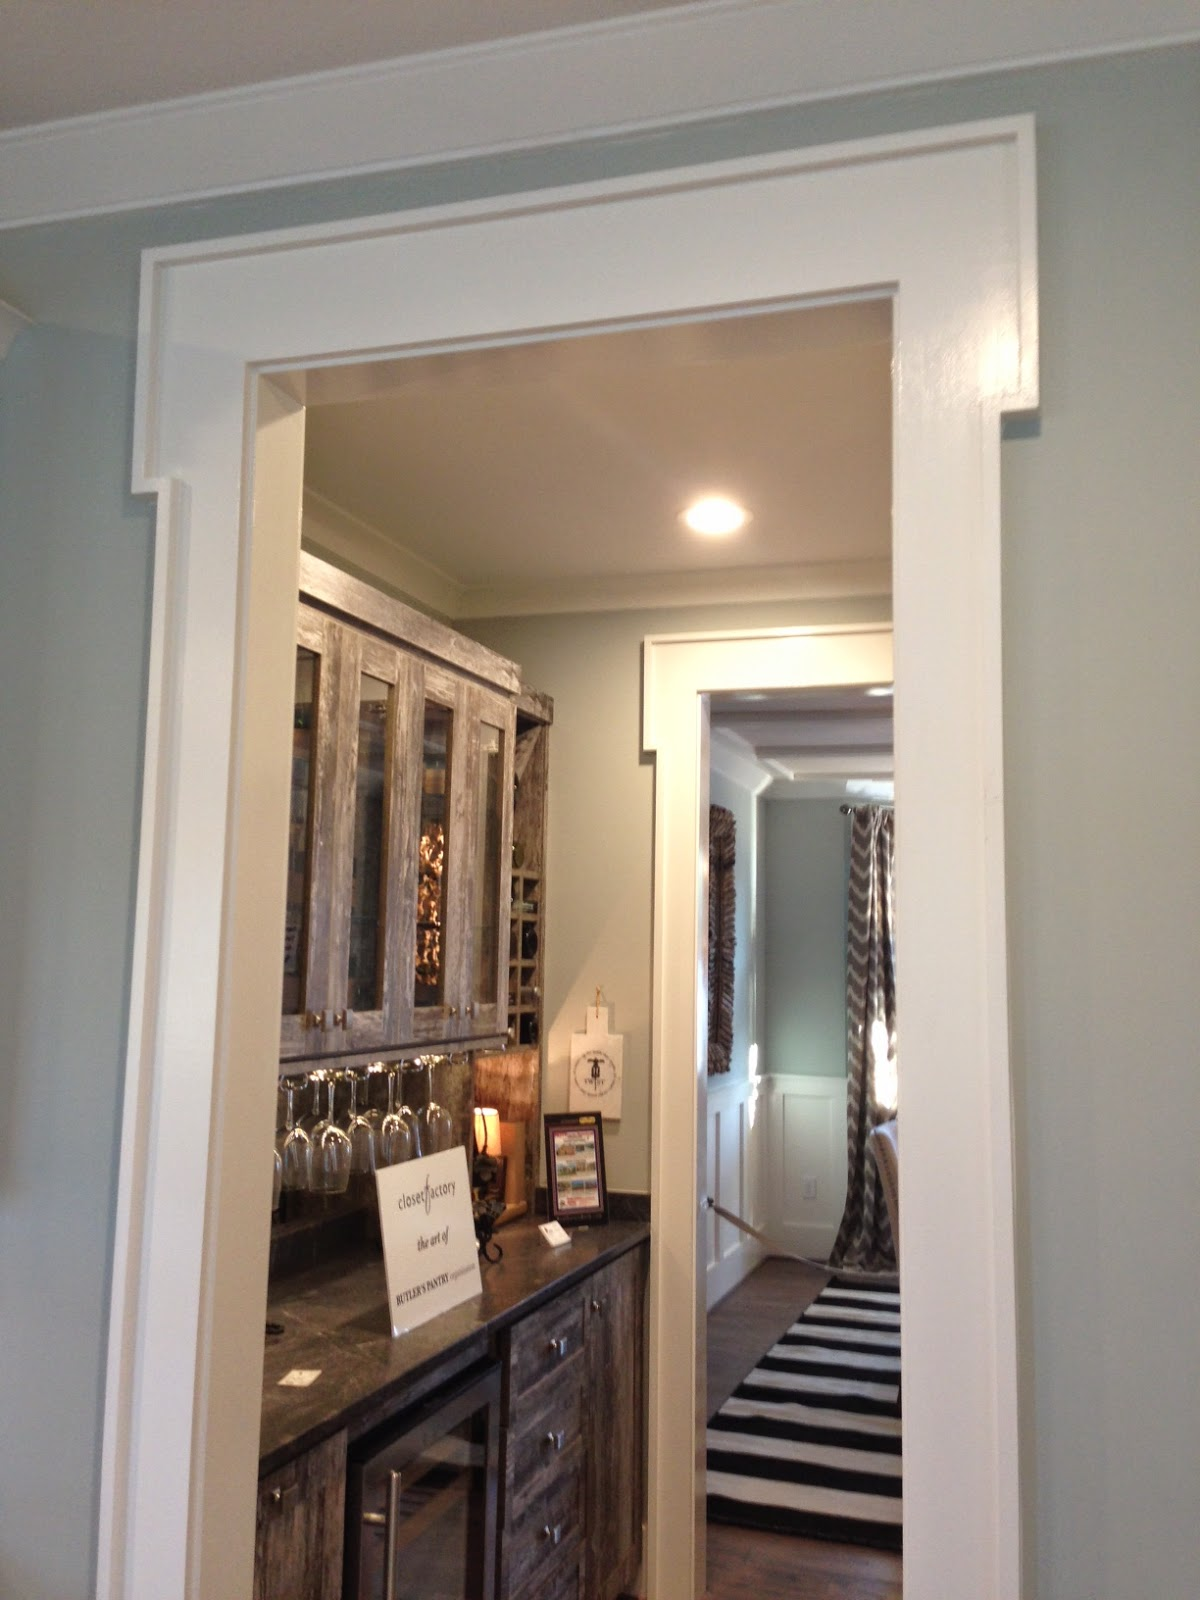 , note the great wet bar flowing between the kitchen and dining room